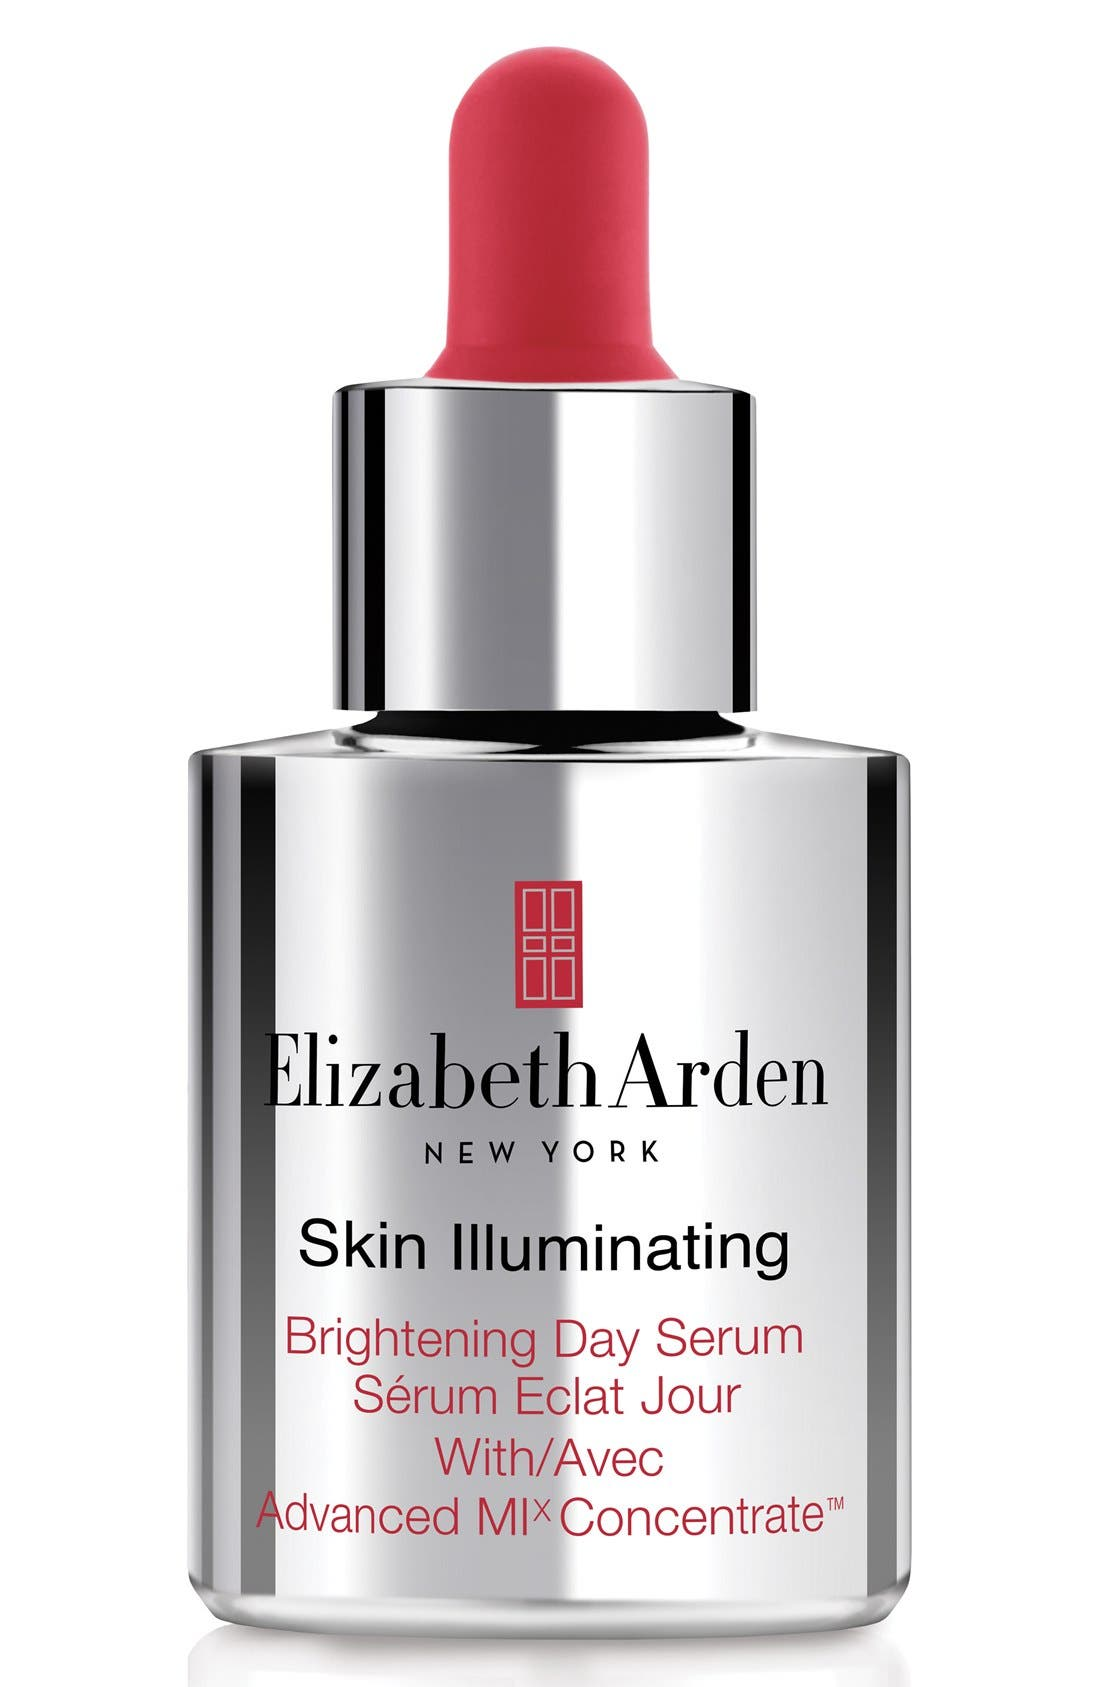 Elizabeth Arden Skin Illuminating Advanced Brightening Day Serum